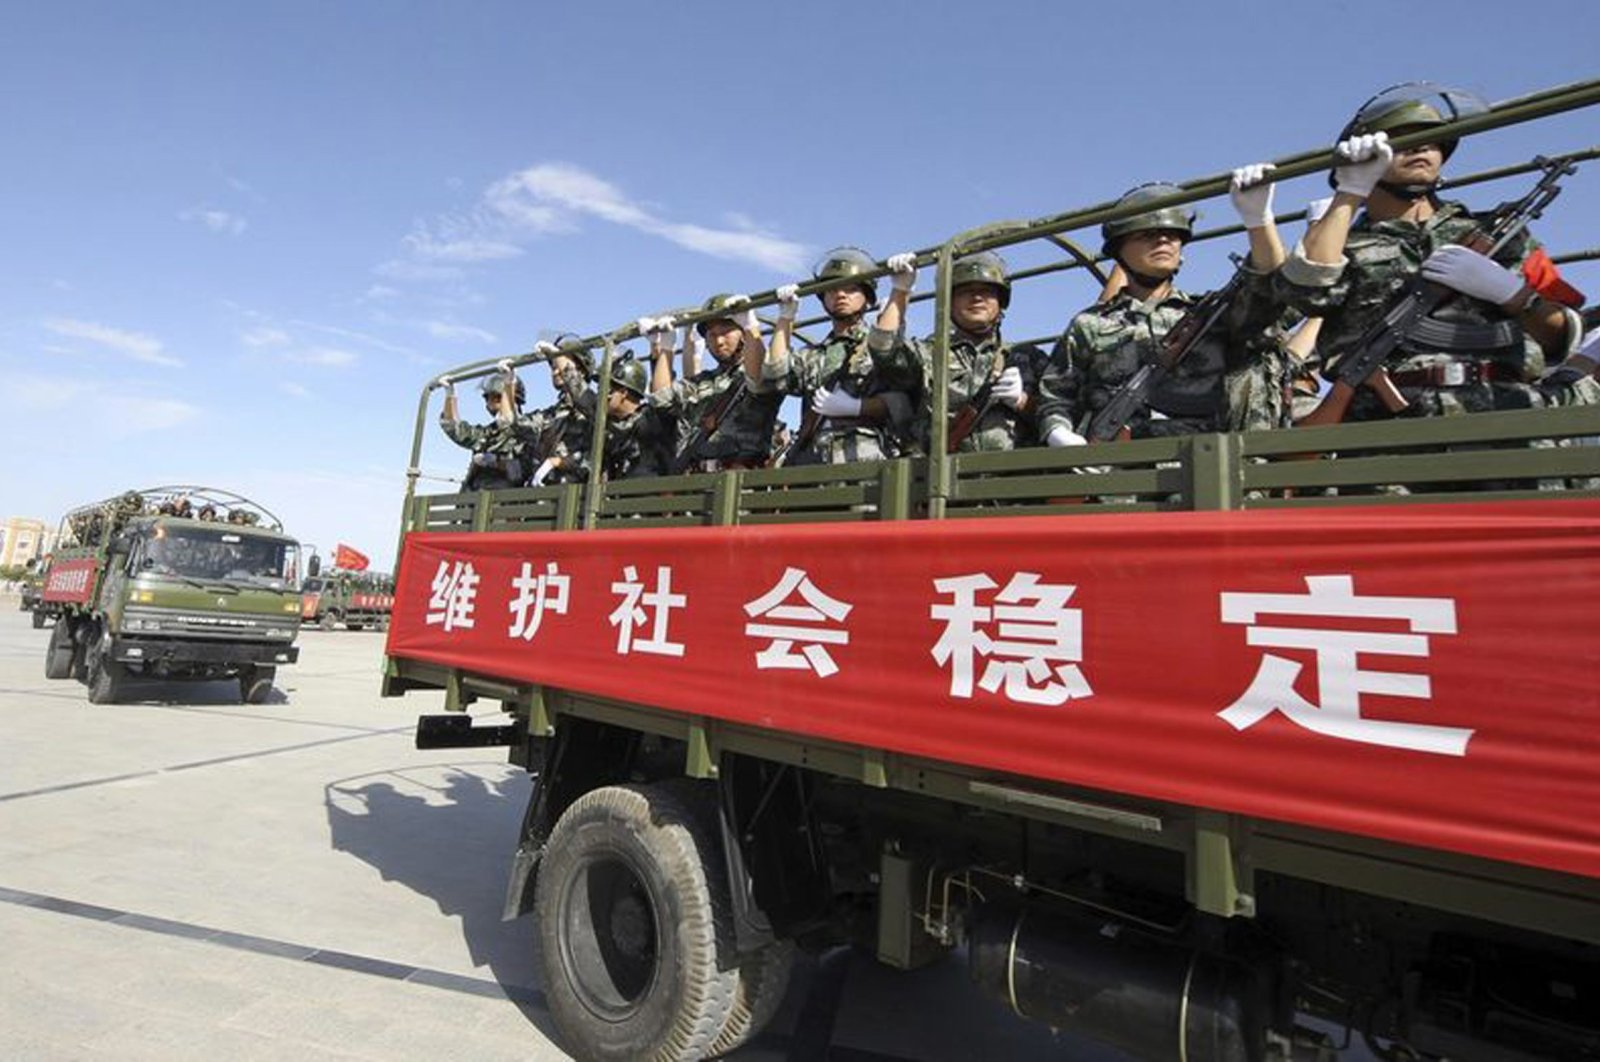 Armed members from a Chinese militia take part in a joint exercise in Hami, Uighur Autonomous Region, July 2, 2013. (Reuters Photo)